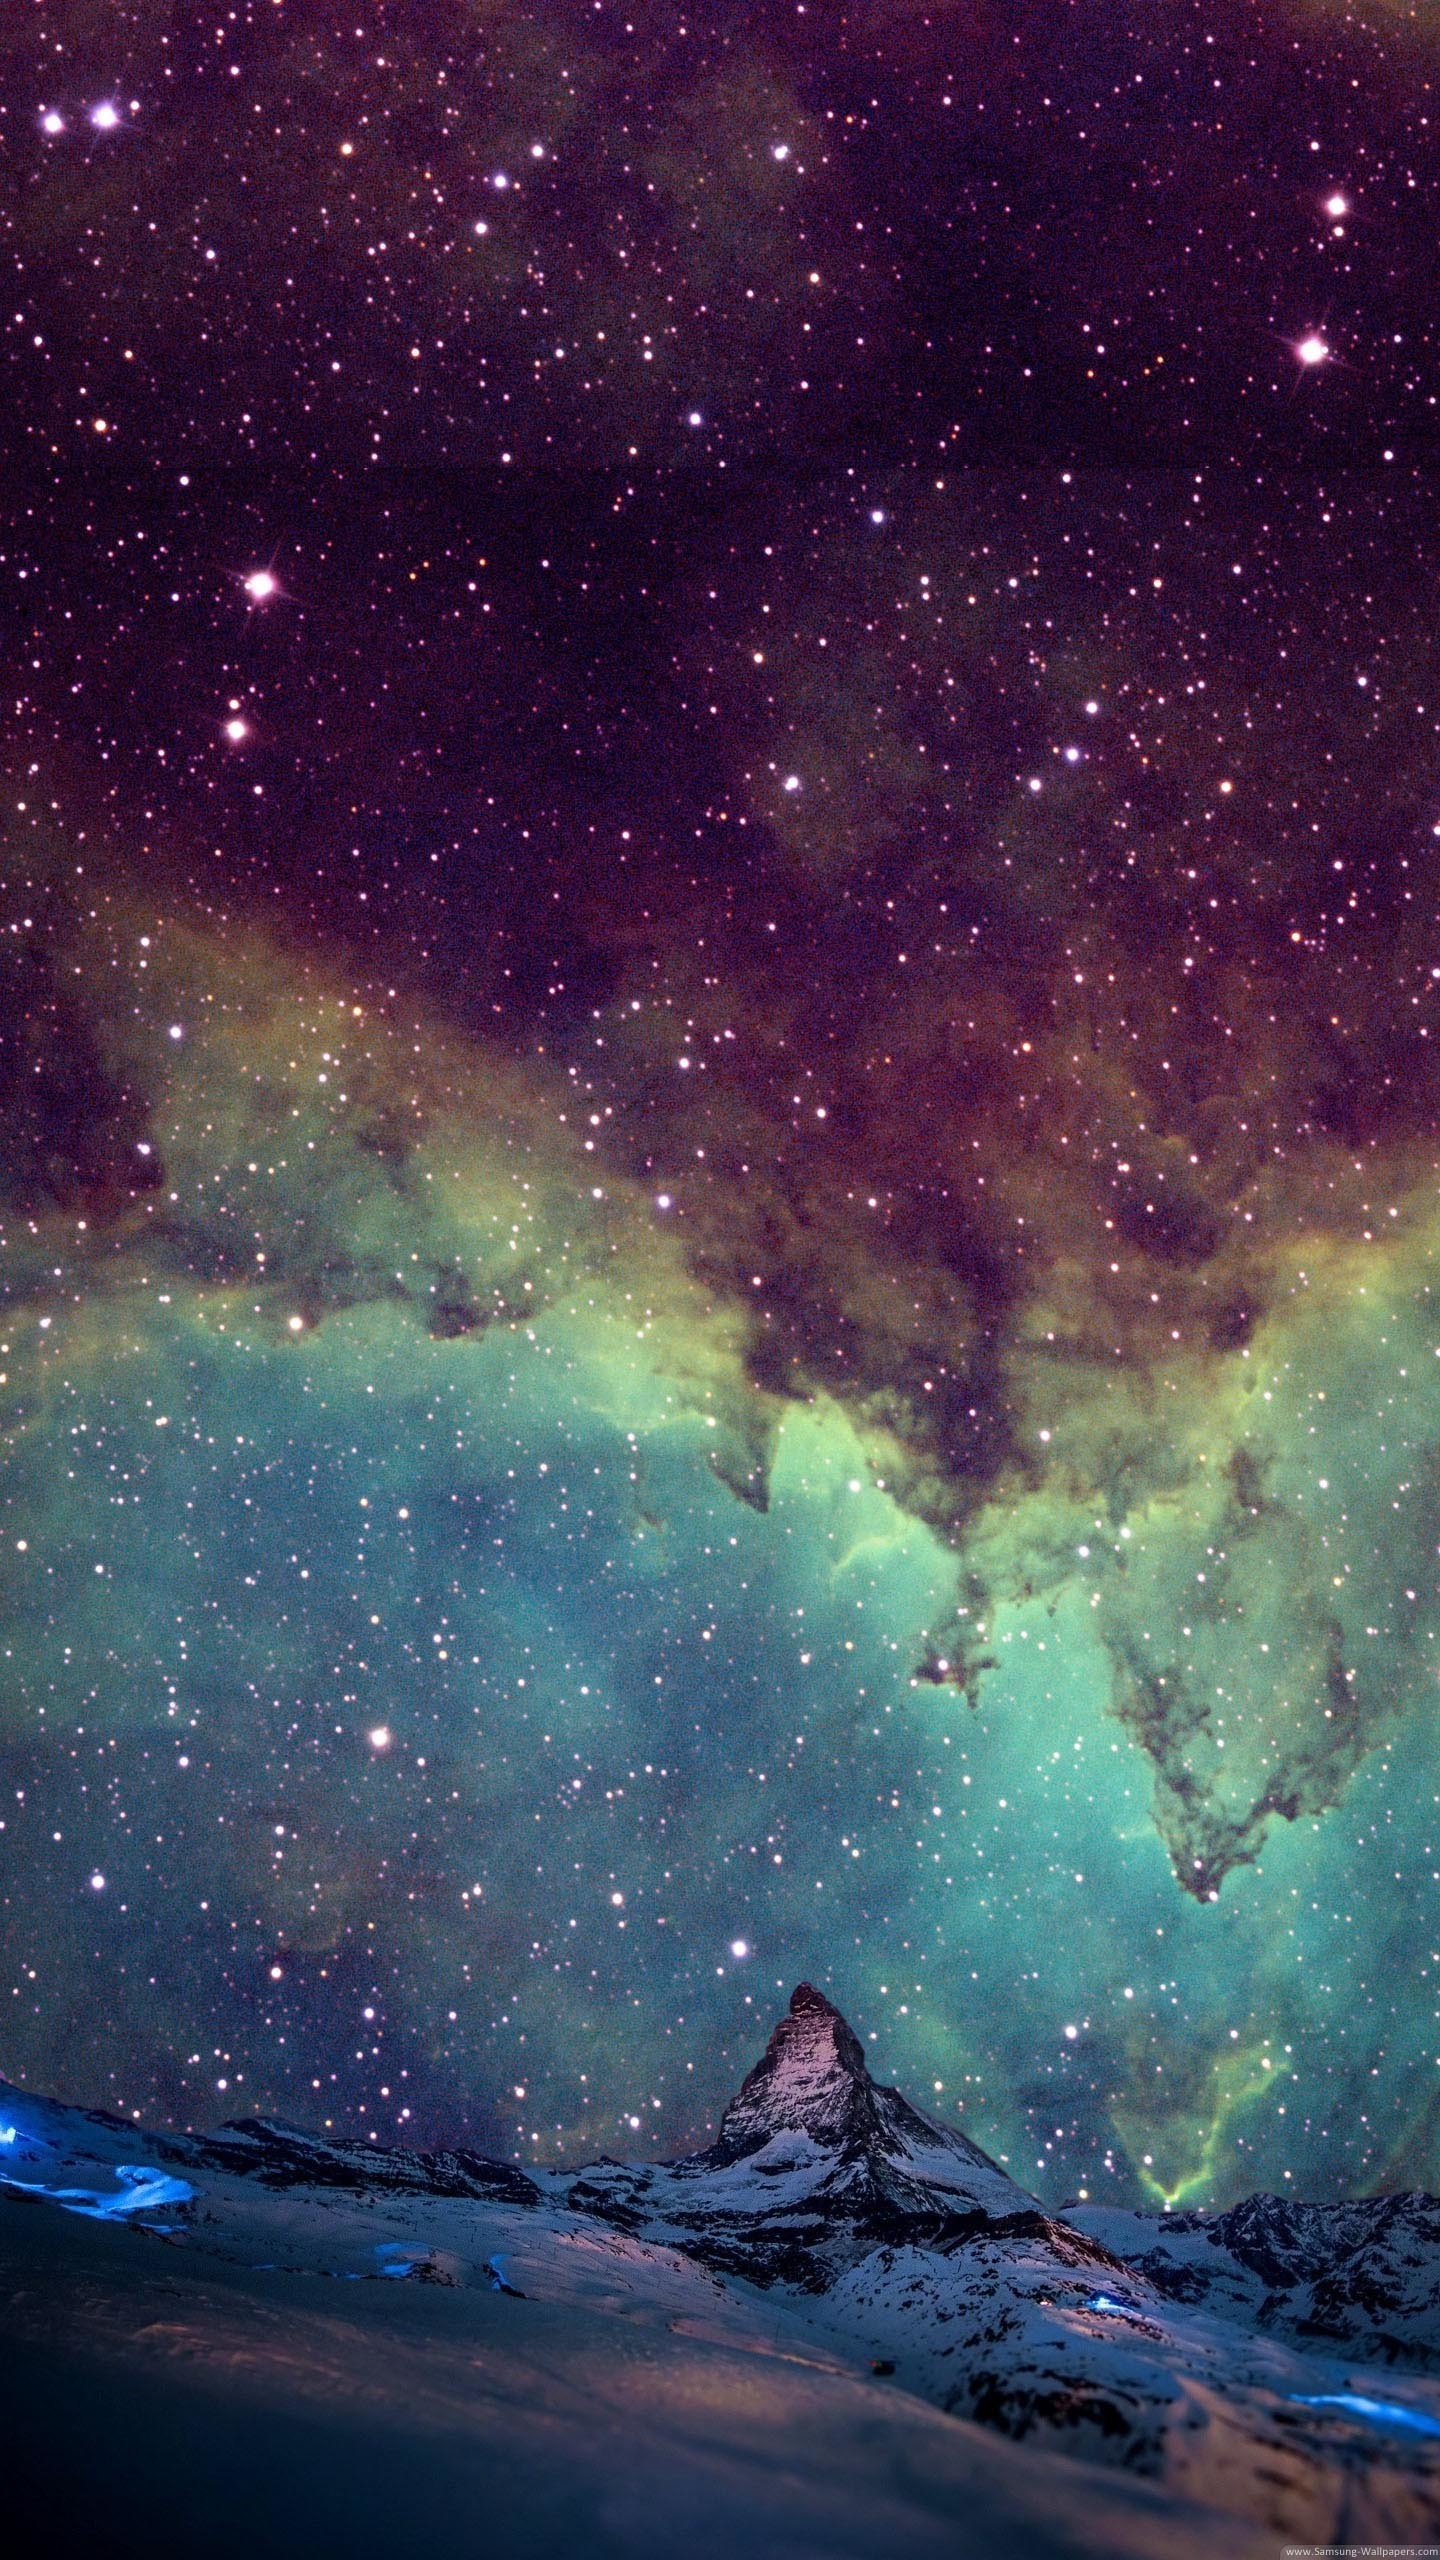 1440x2560 Free wallpaper for Galaxy S6 #stars #galaxy #phone wallpaper